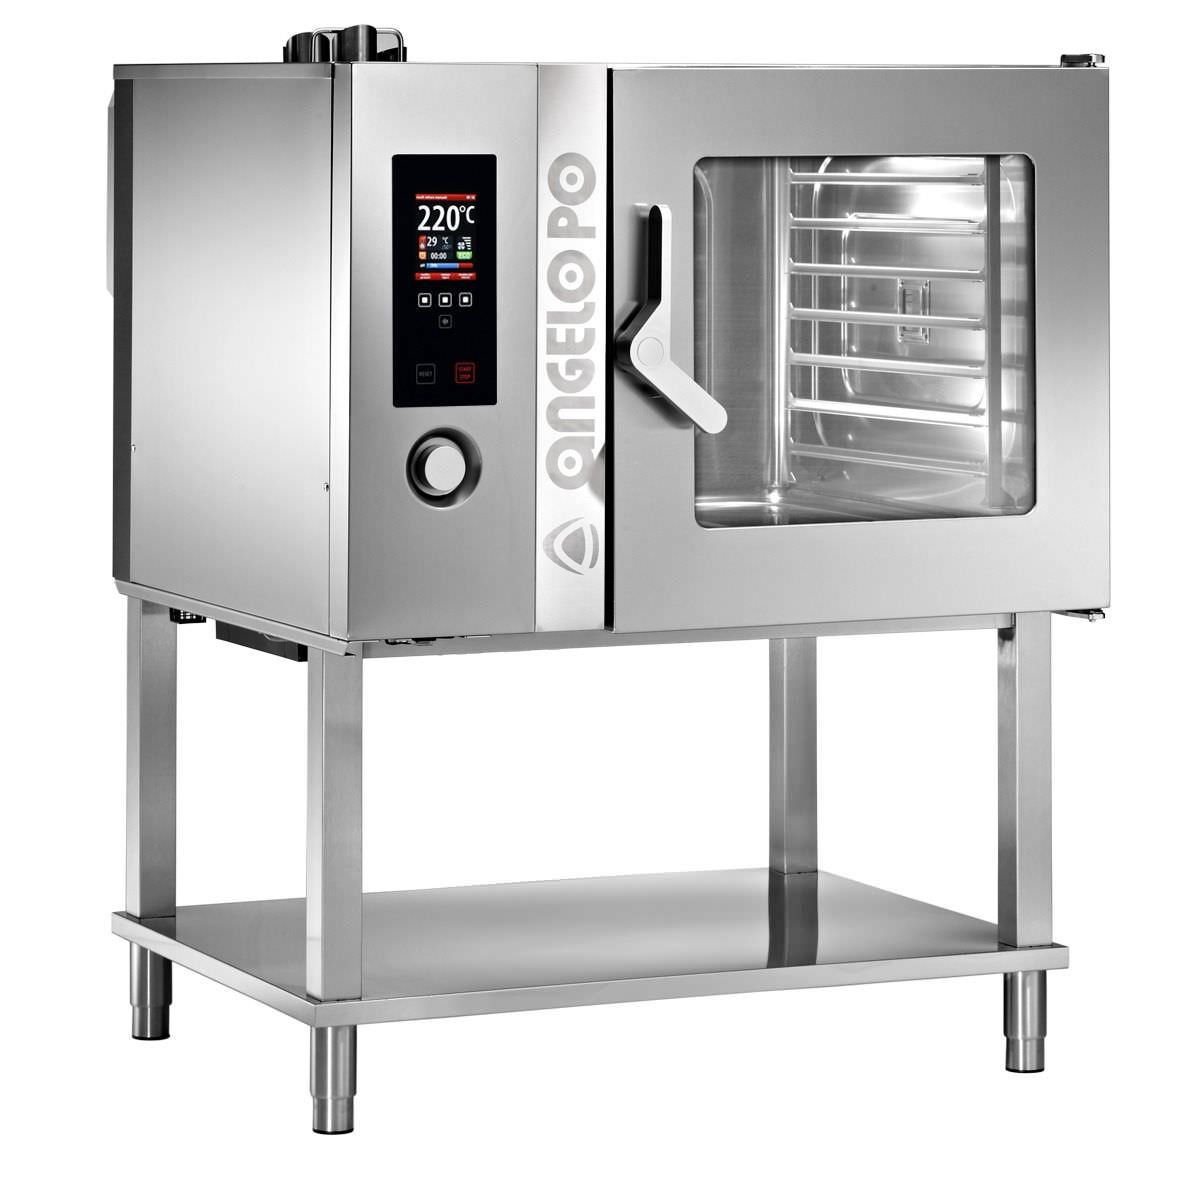 Convection Microwave Oven Vs Oven: Commercial Kitchen Equipment And Supply Blog